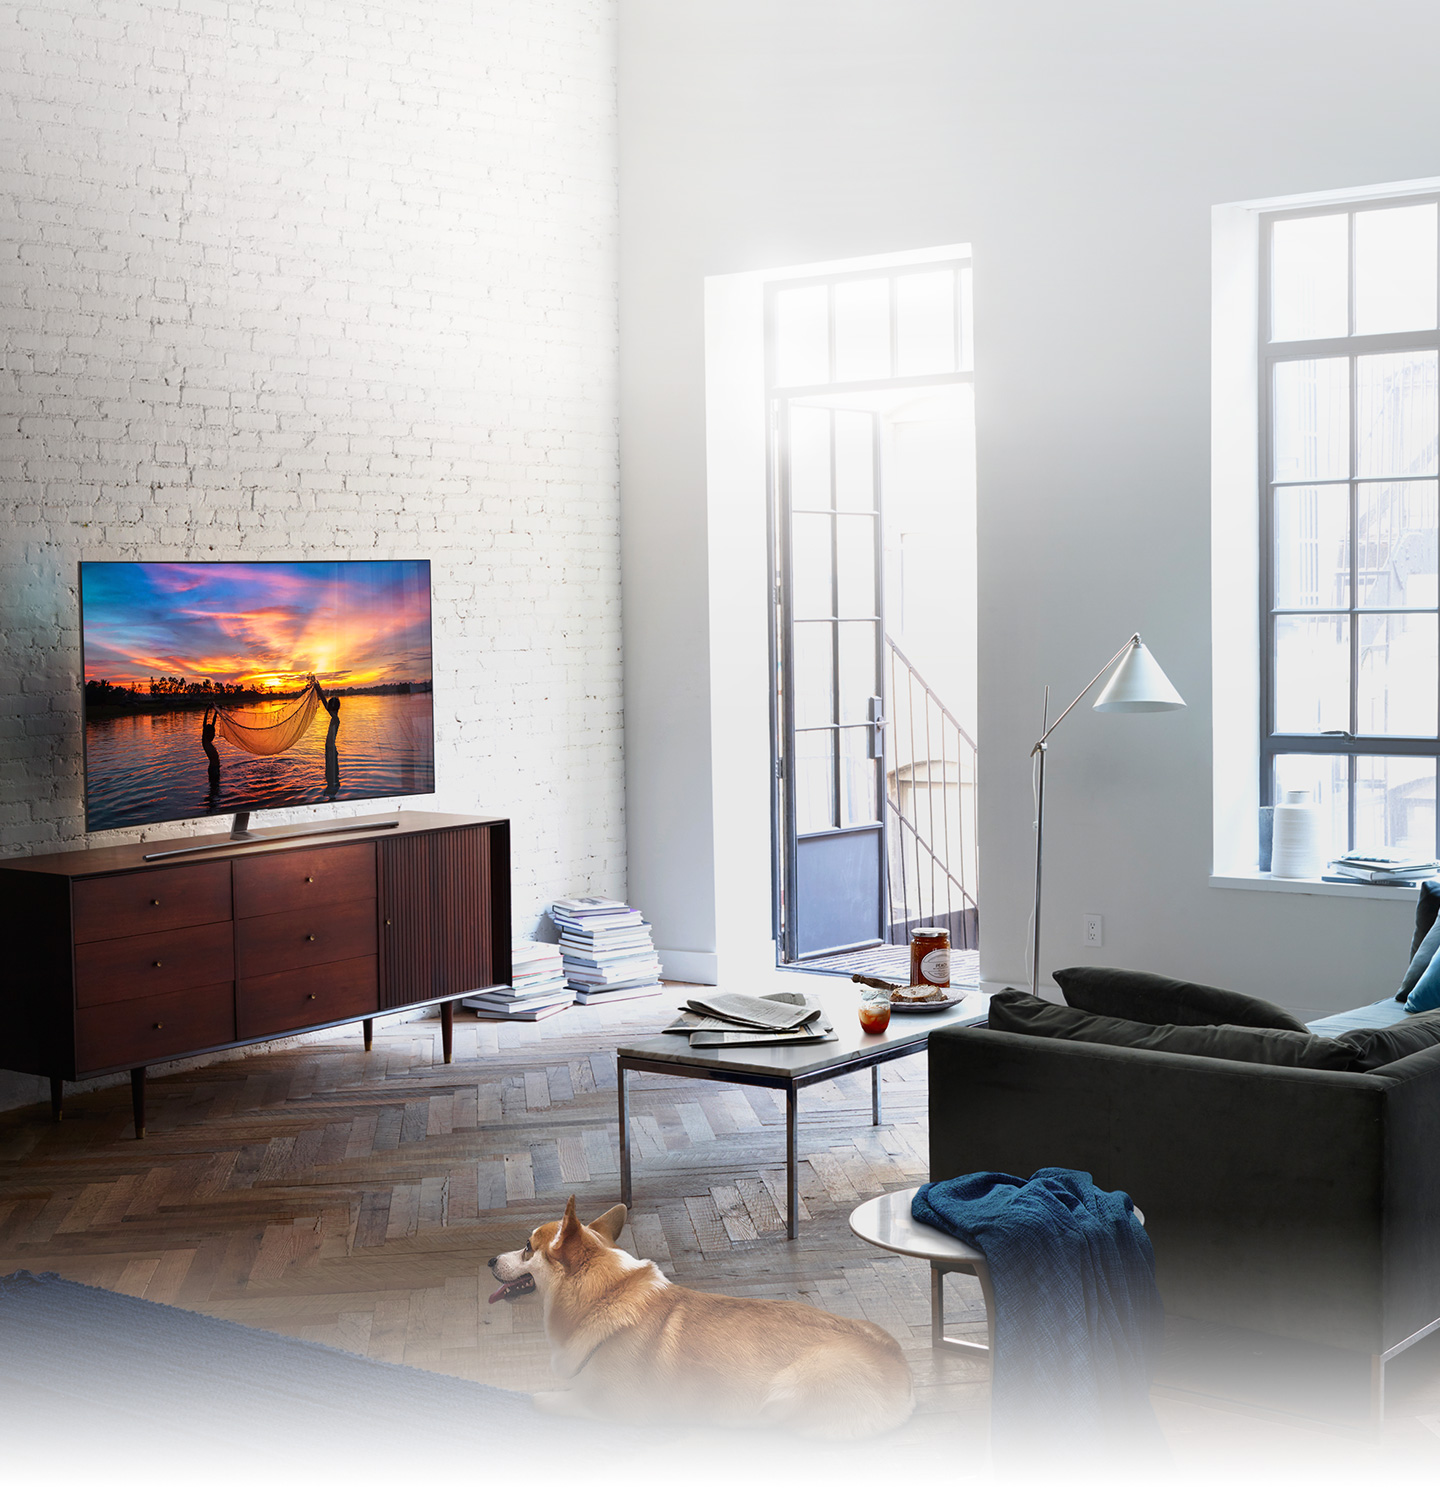 QLED TV has been set in the living room where the morning sun shines brightly and on its display shows children fishing with their net in the seashore glowing with the setting sun.